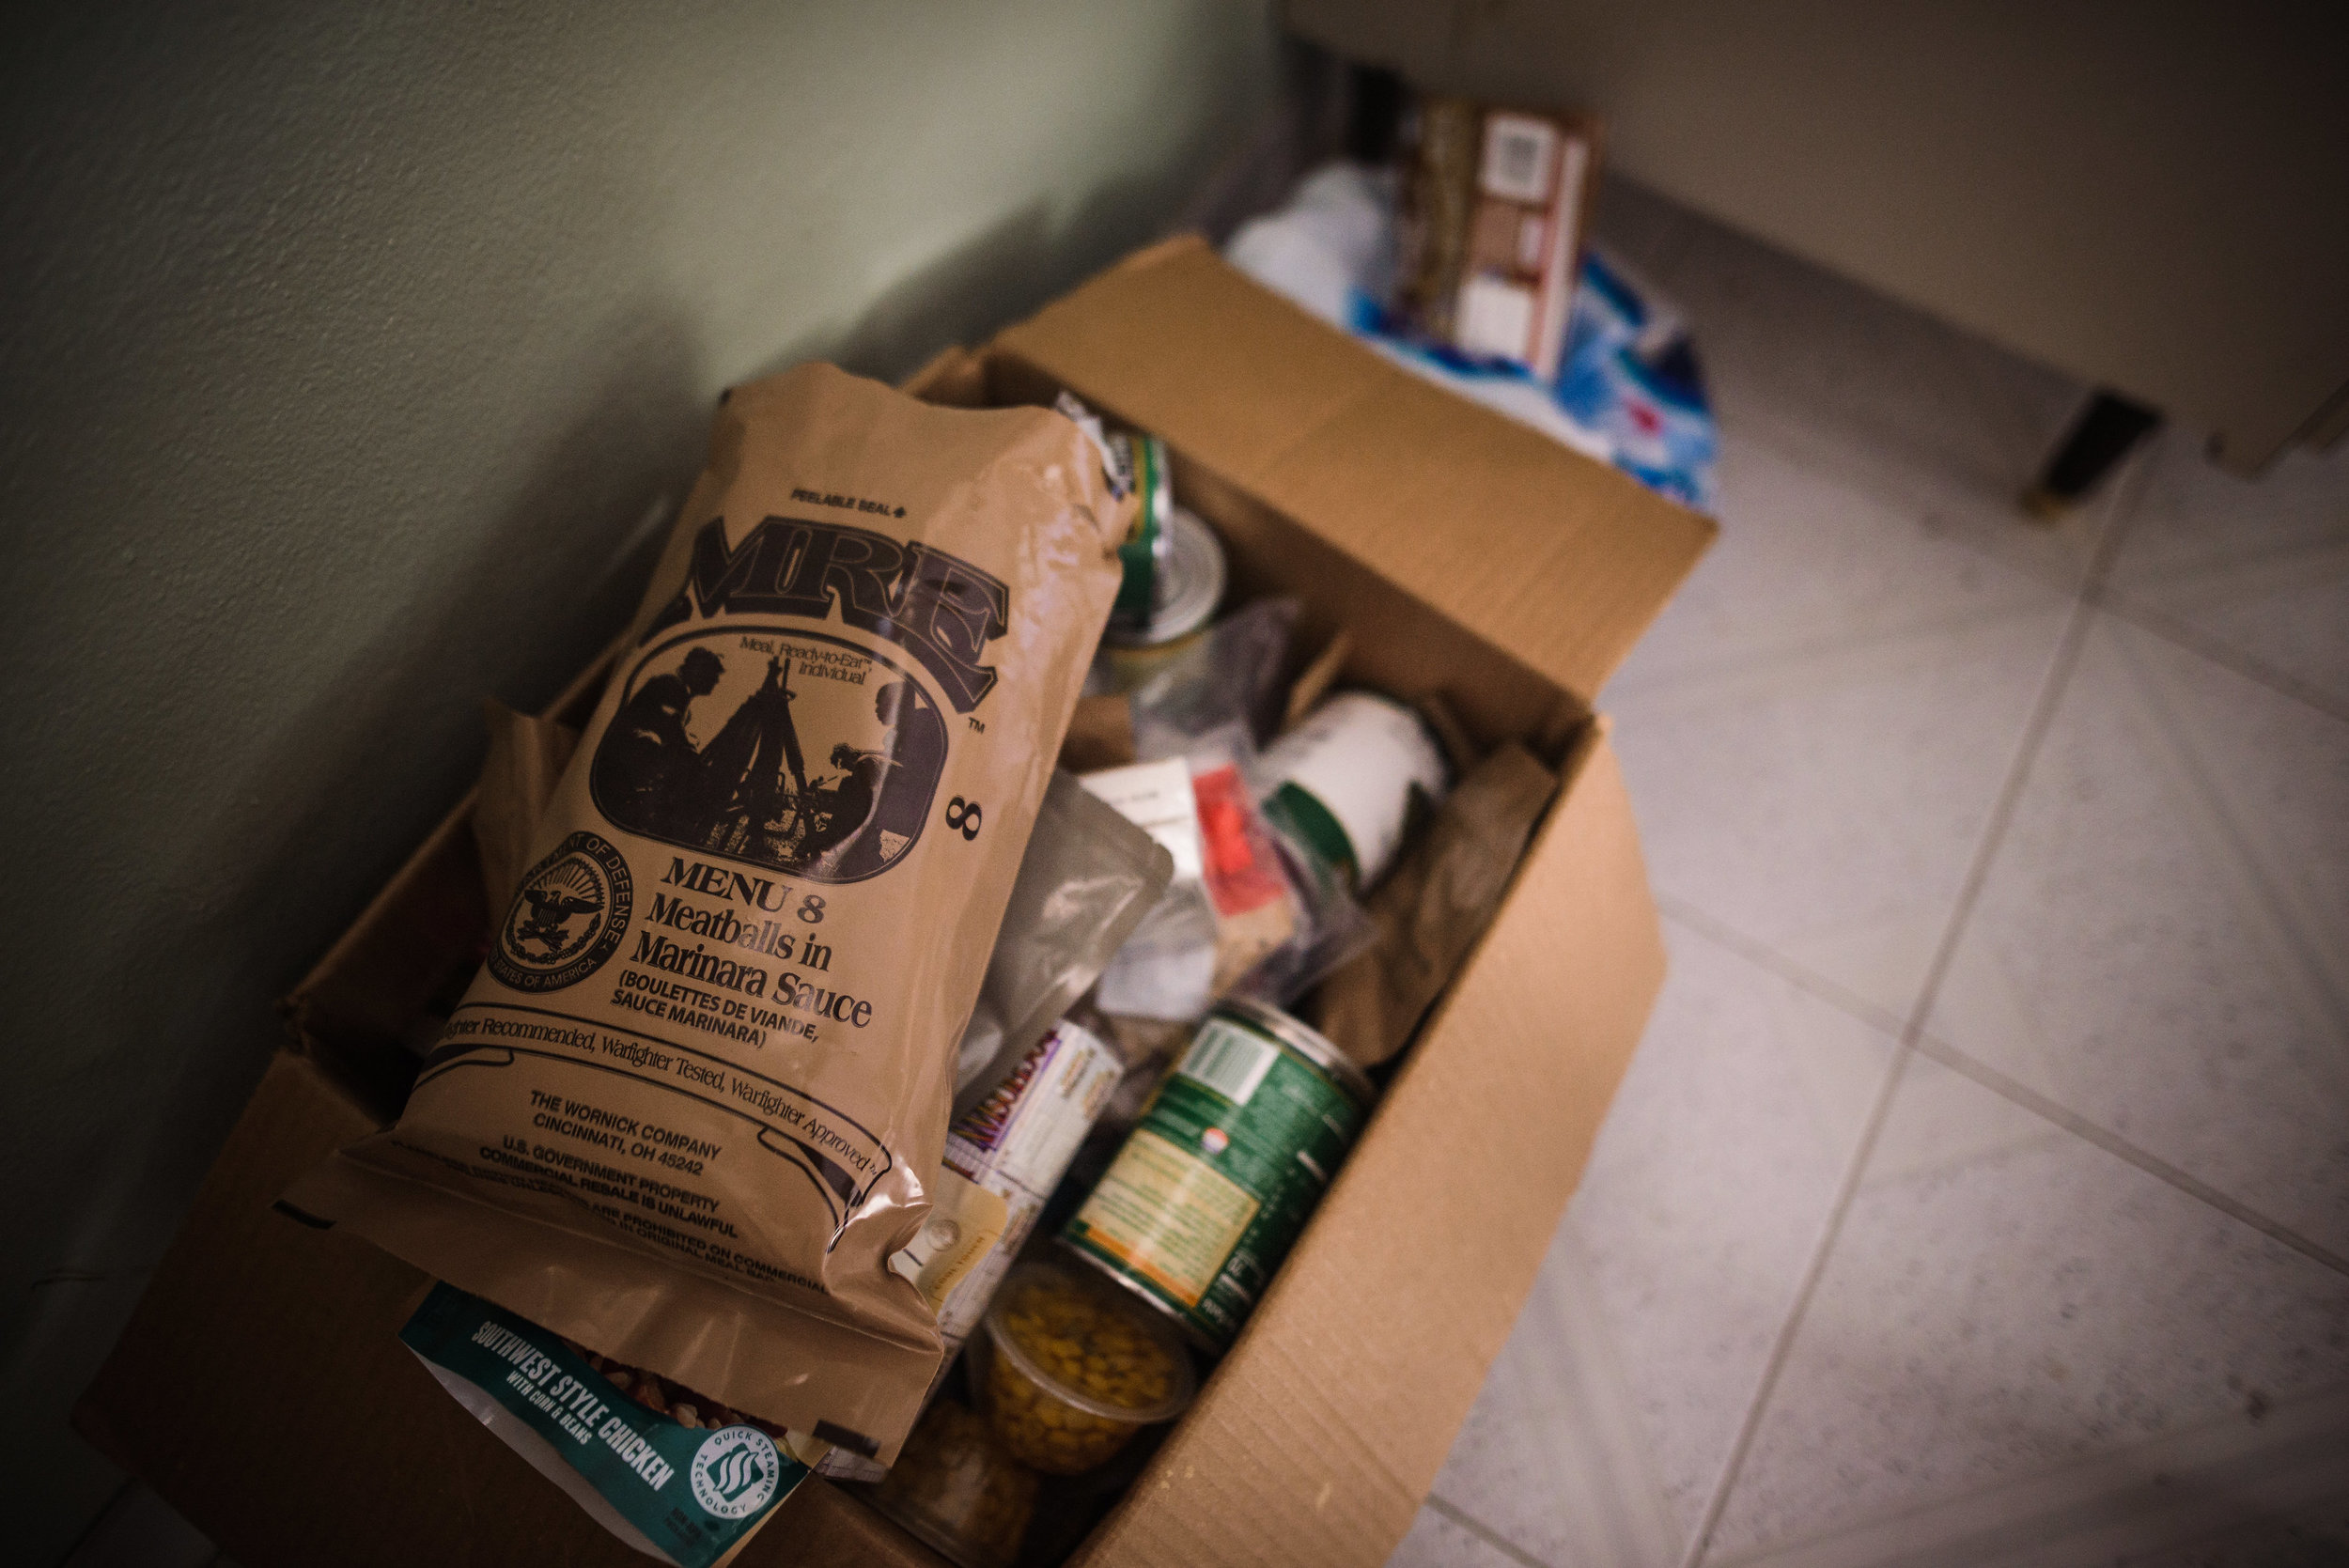 Photo credit: Aniya Emtage Legnaro  MRE (Meals Ready to Eat) packages are sent to the homes along with canned foods. Orocovis, Puerto Rico